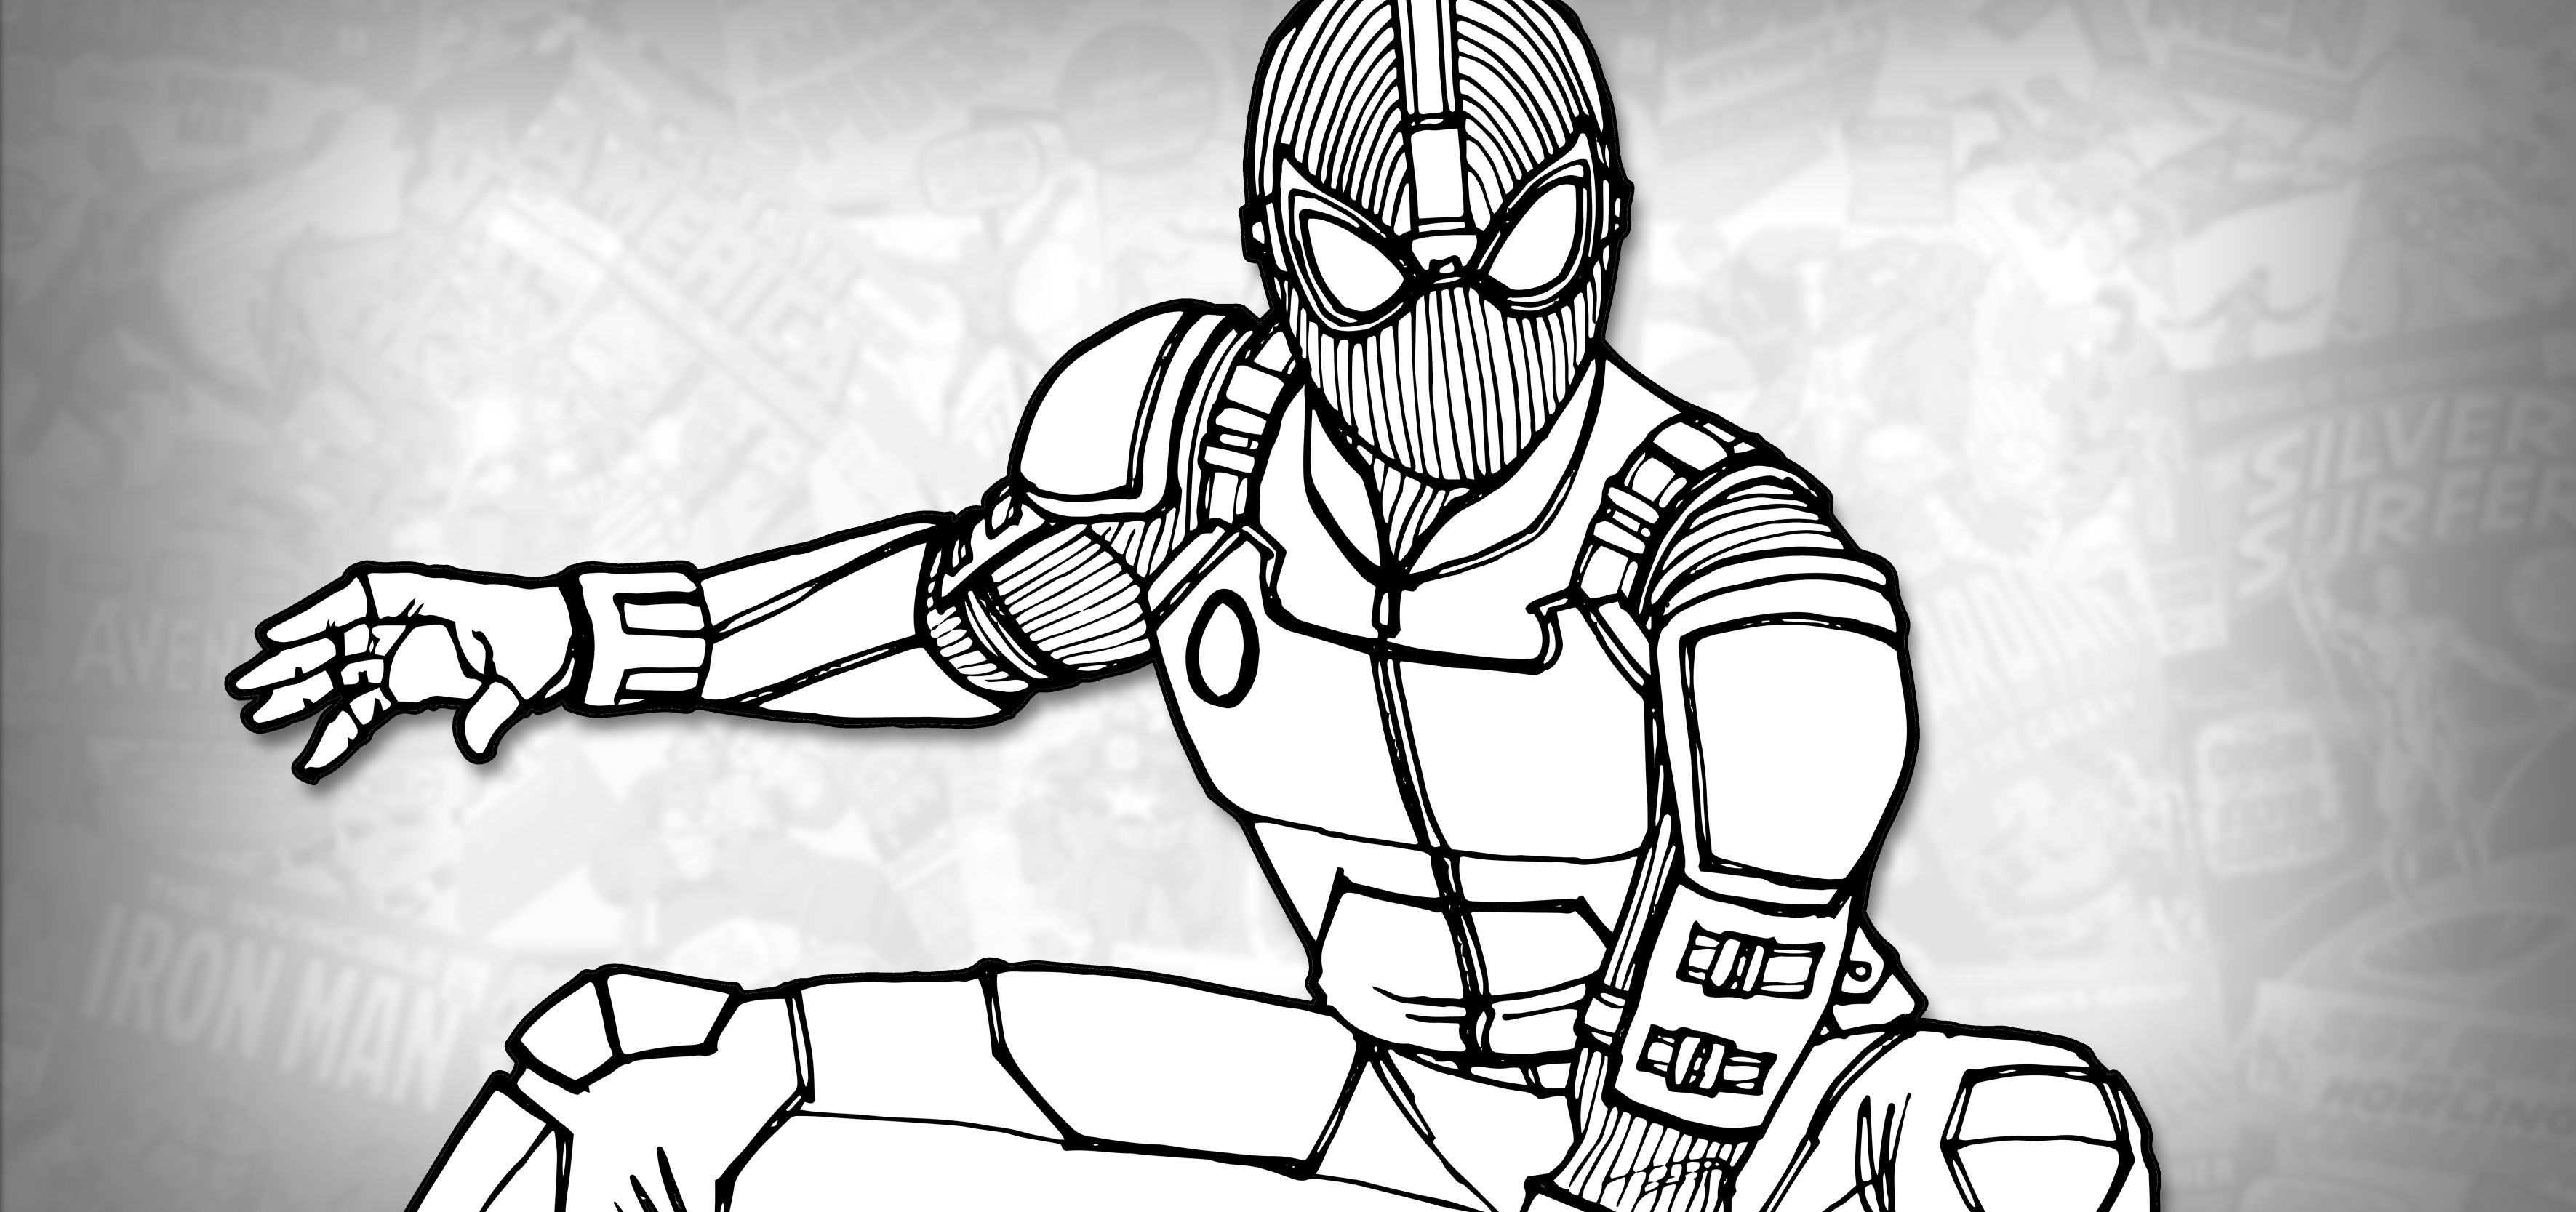 spider man stealth suit coloring page spider man superhero coloring pages stealth spider suit page man coloring